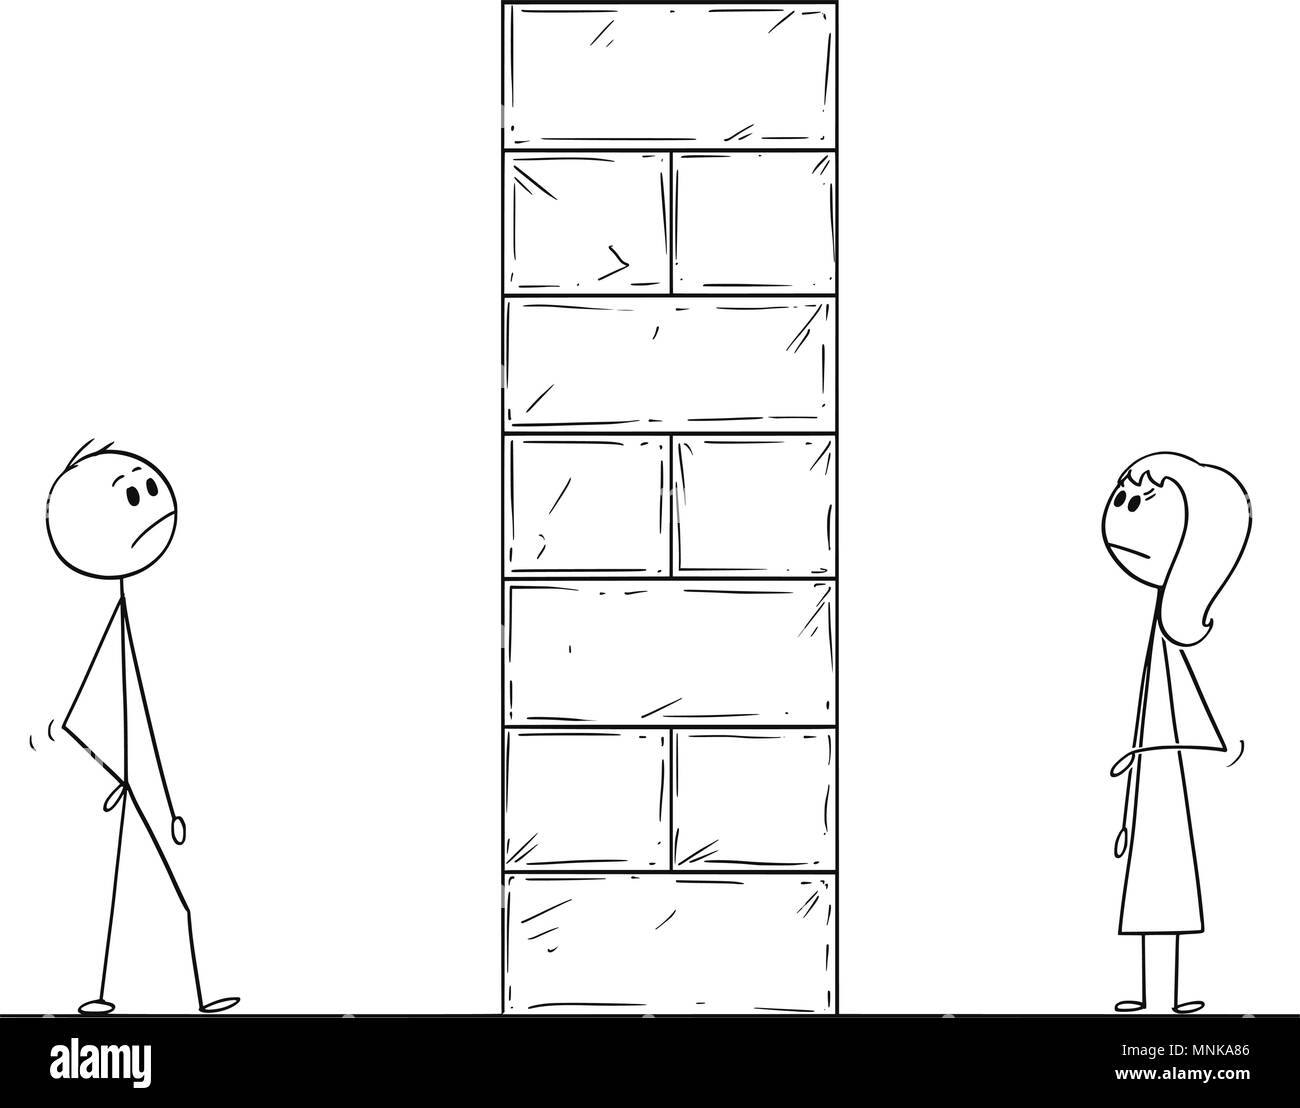 Cartoon of Man and Woman Divided by High Wall Obstacle - Stock Vector